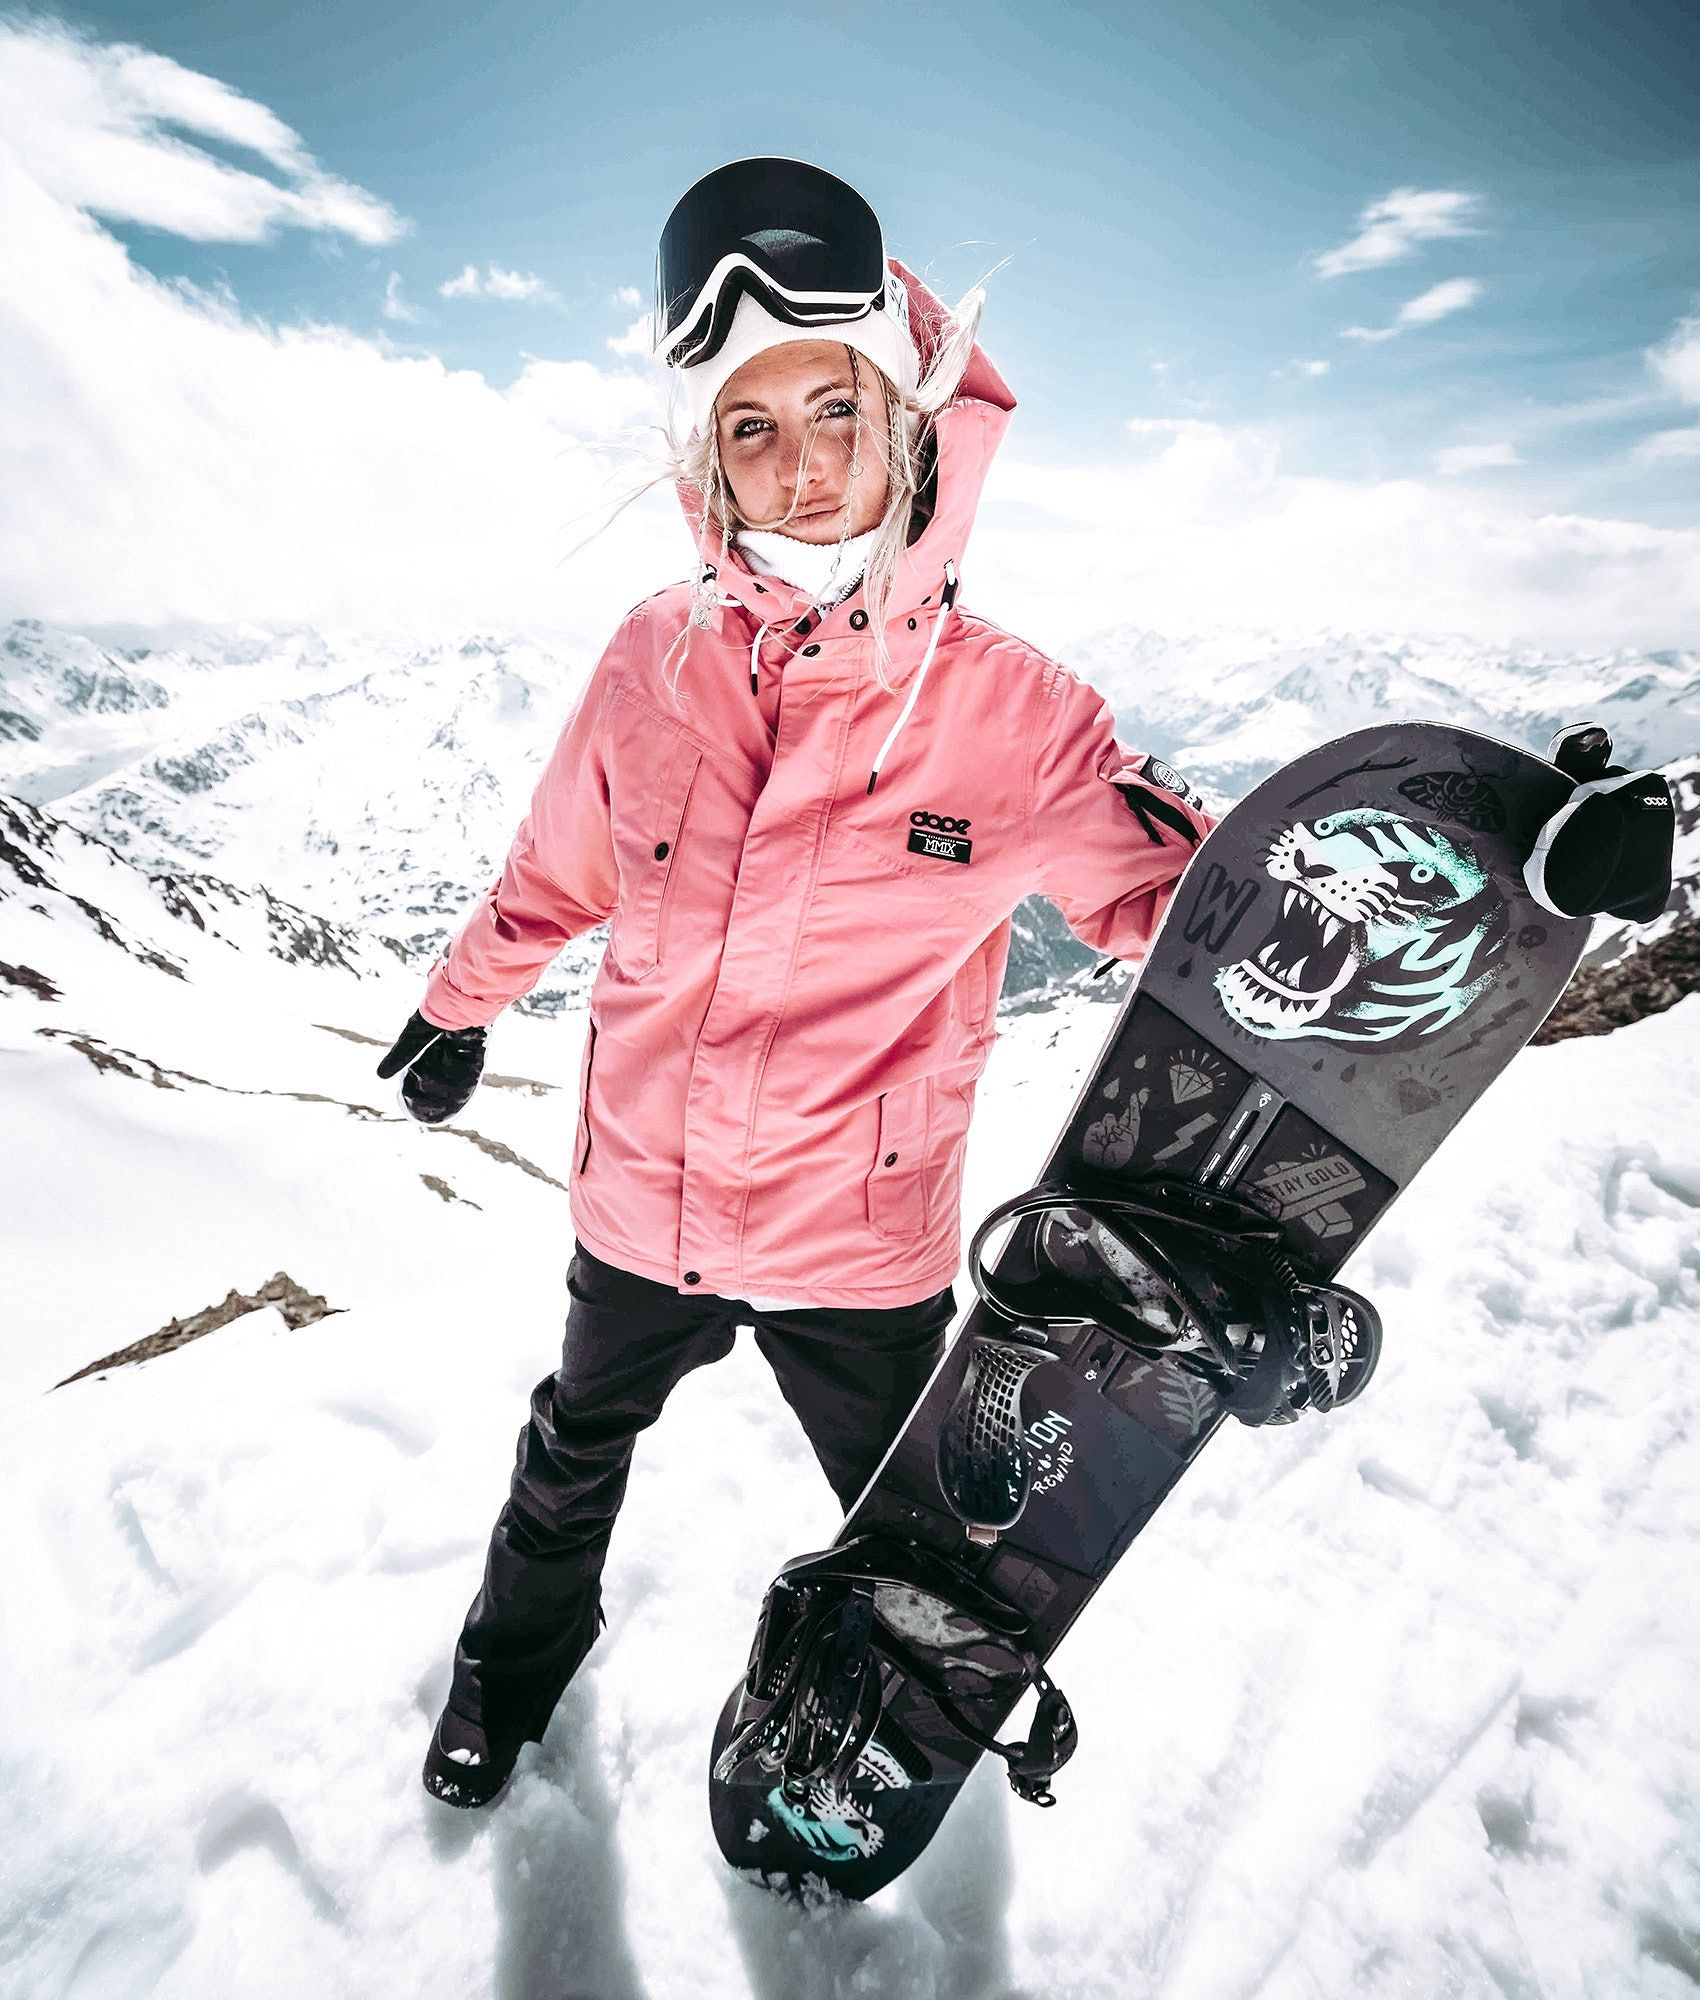 f97e322661 snowboarding gear womens snowboard outfit